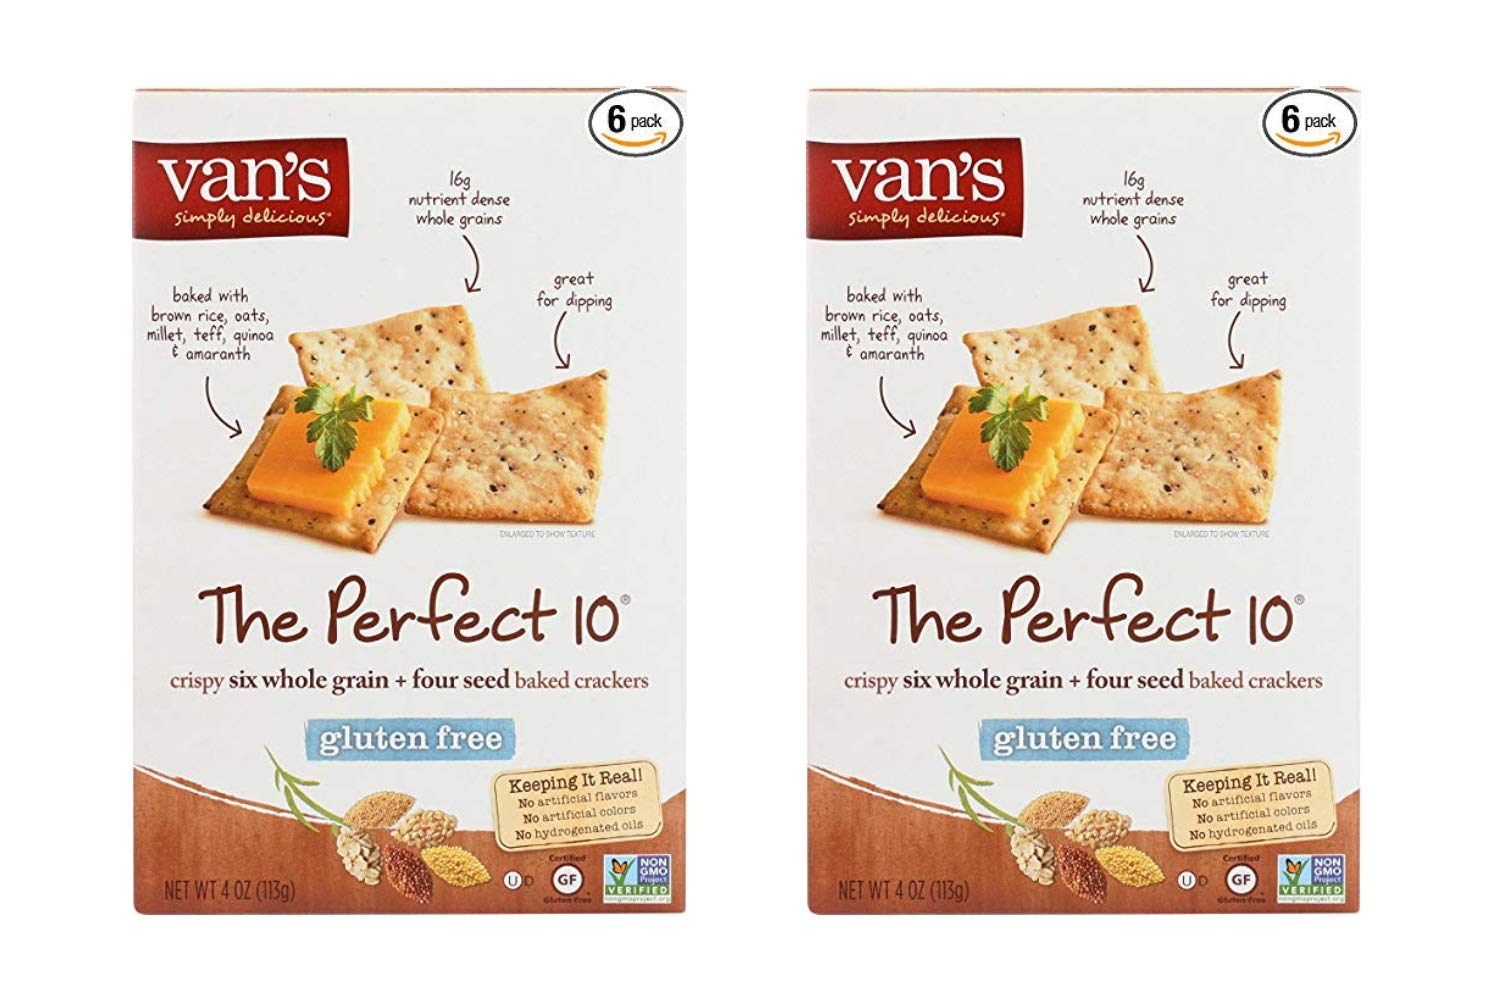 Vans Natural Foods The Perfect 10 Gluten Free Crackers, 4 Ounce - 6 Count per Pack (2 Pack)